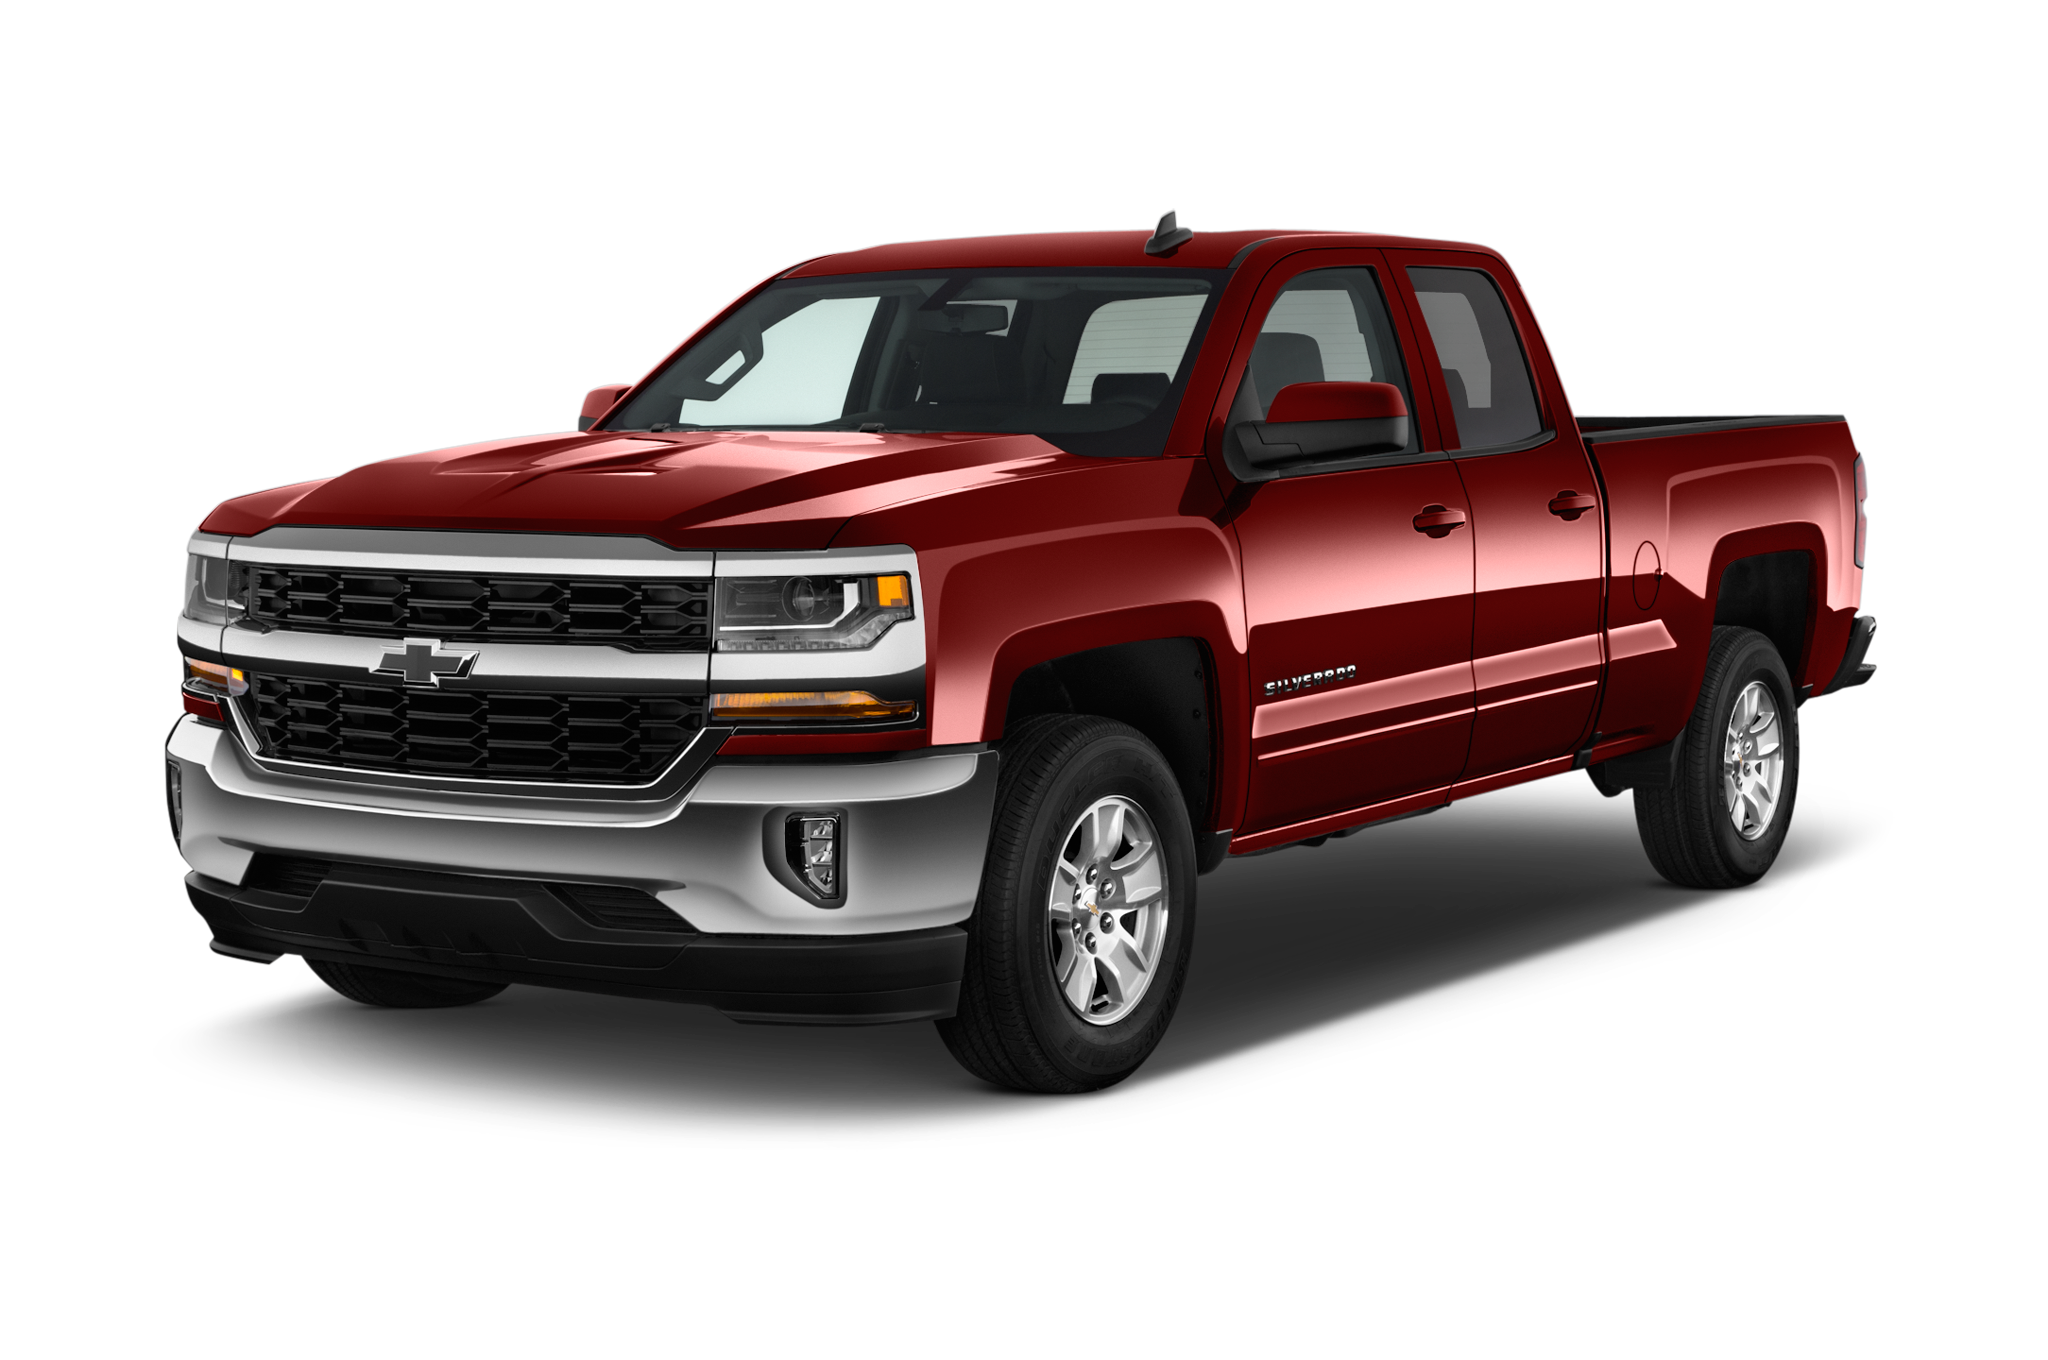 2016 Chevrolet Silverado 1500 Reviews And Rating Motortrend